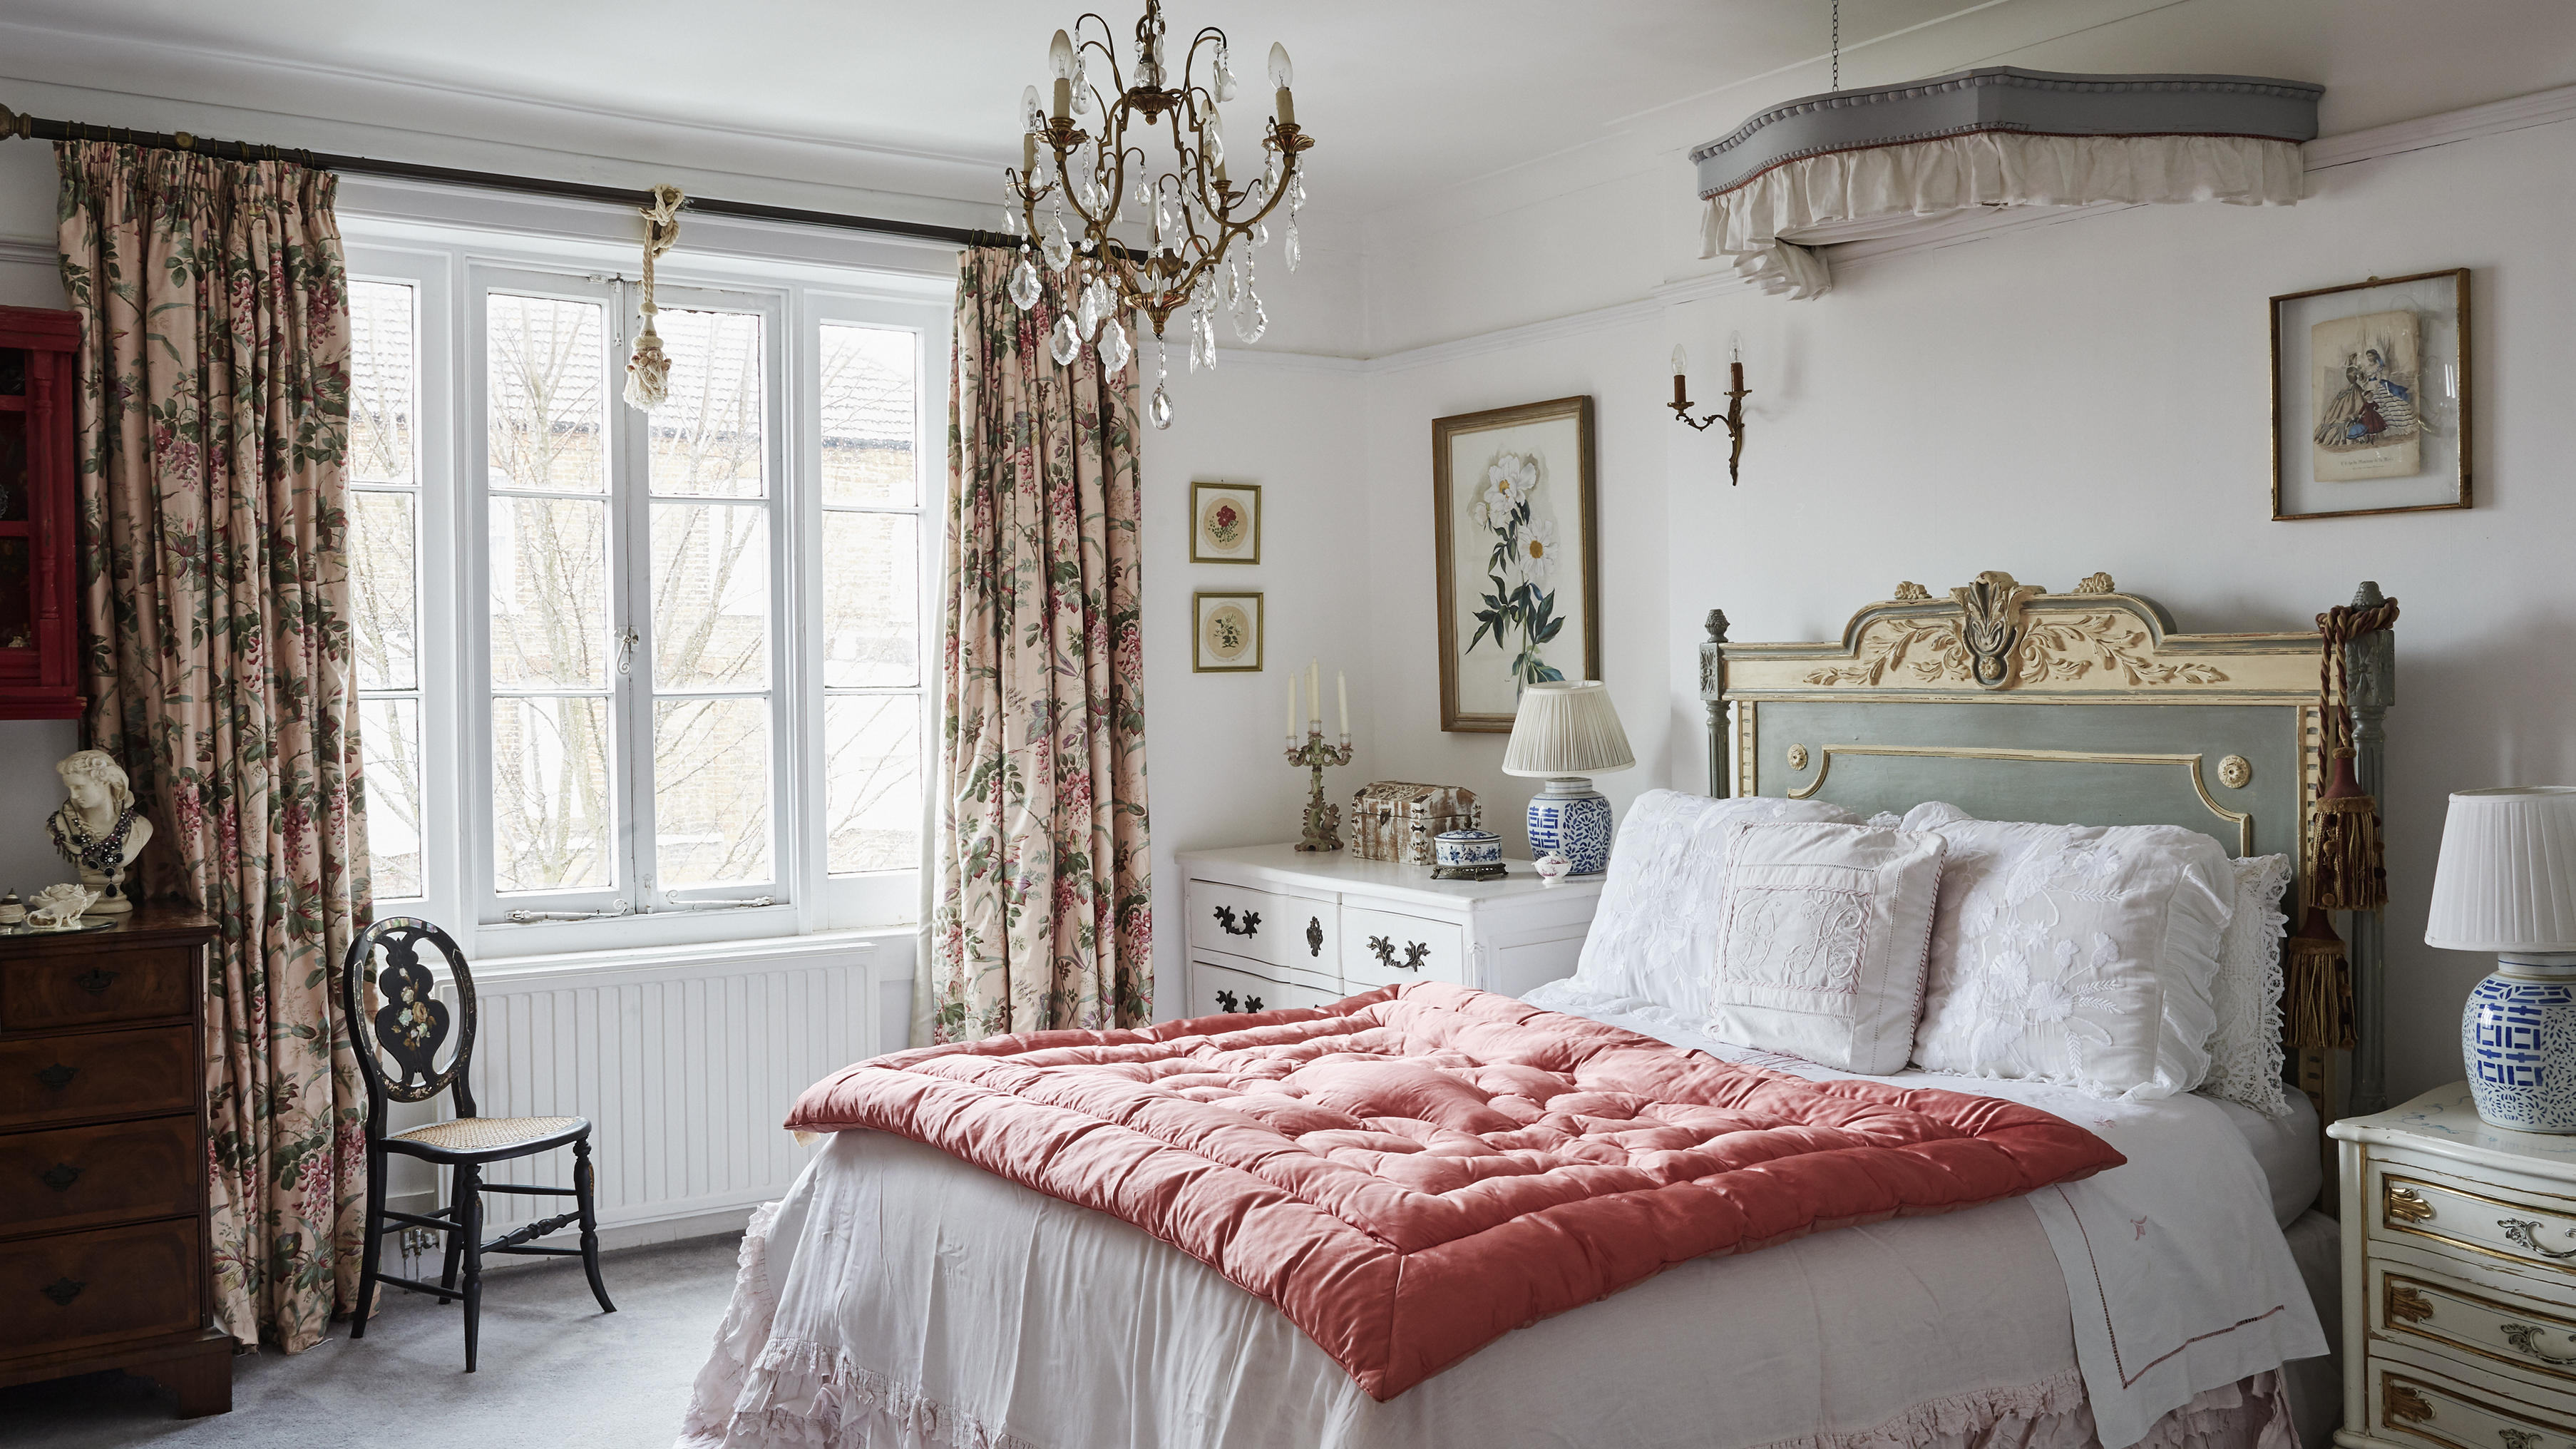 13 Vintage Bedroom Ideas Retro Looks For Any Bedroom Real Homes